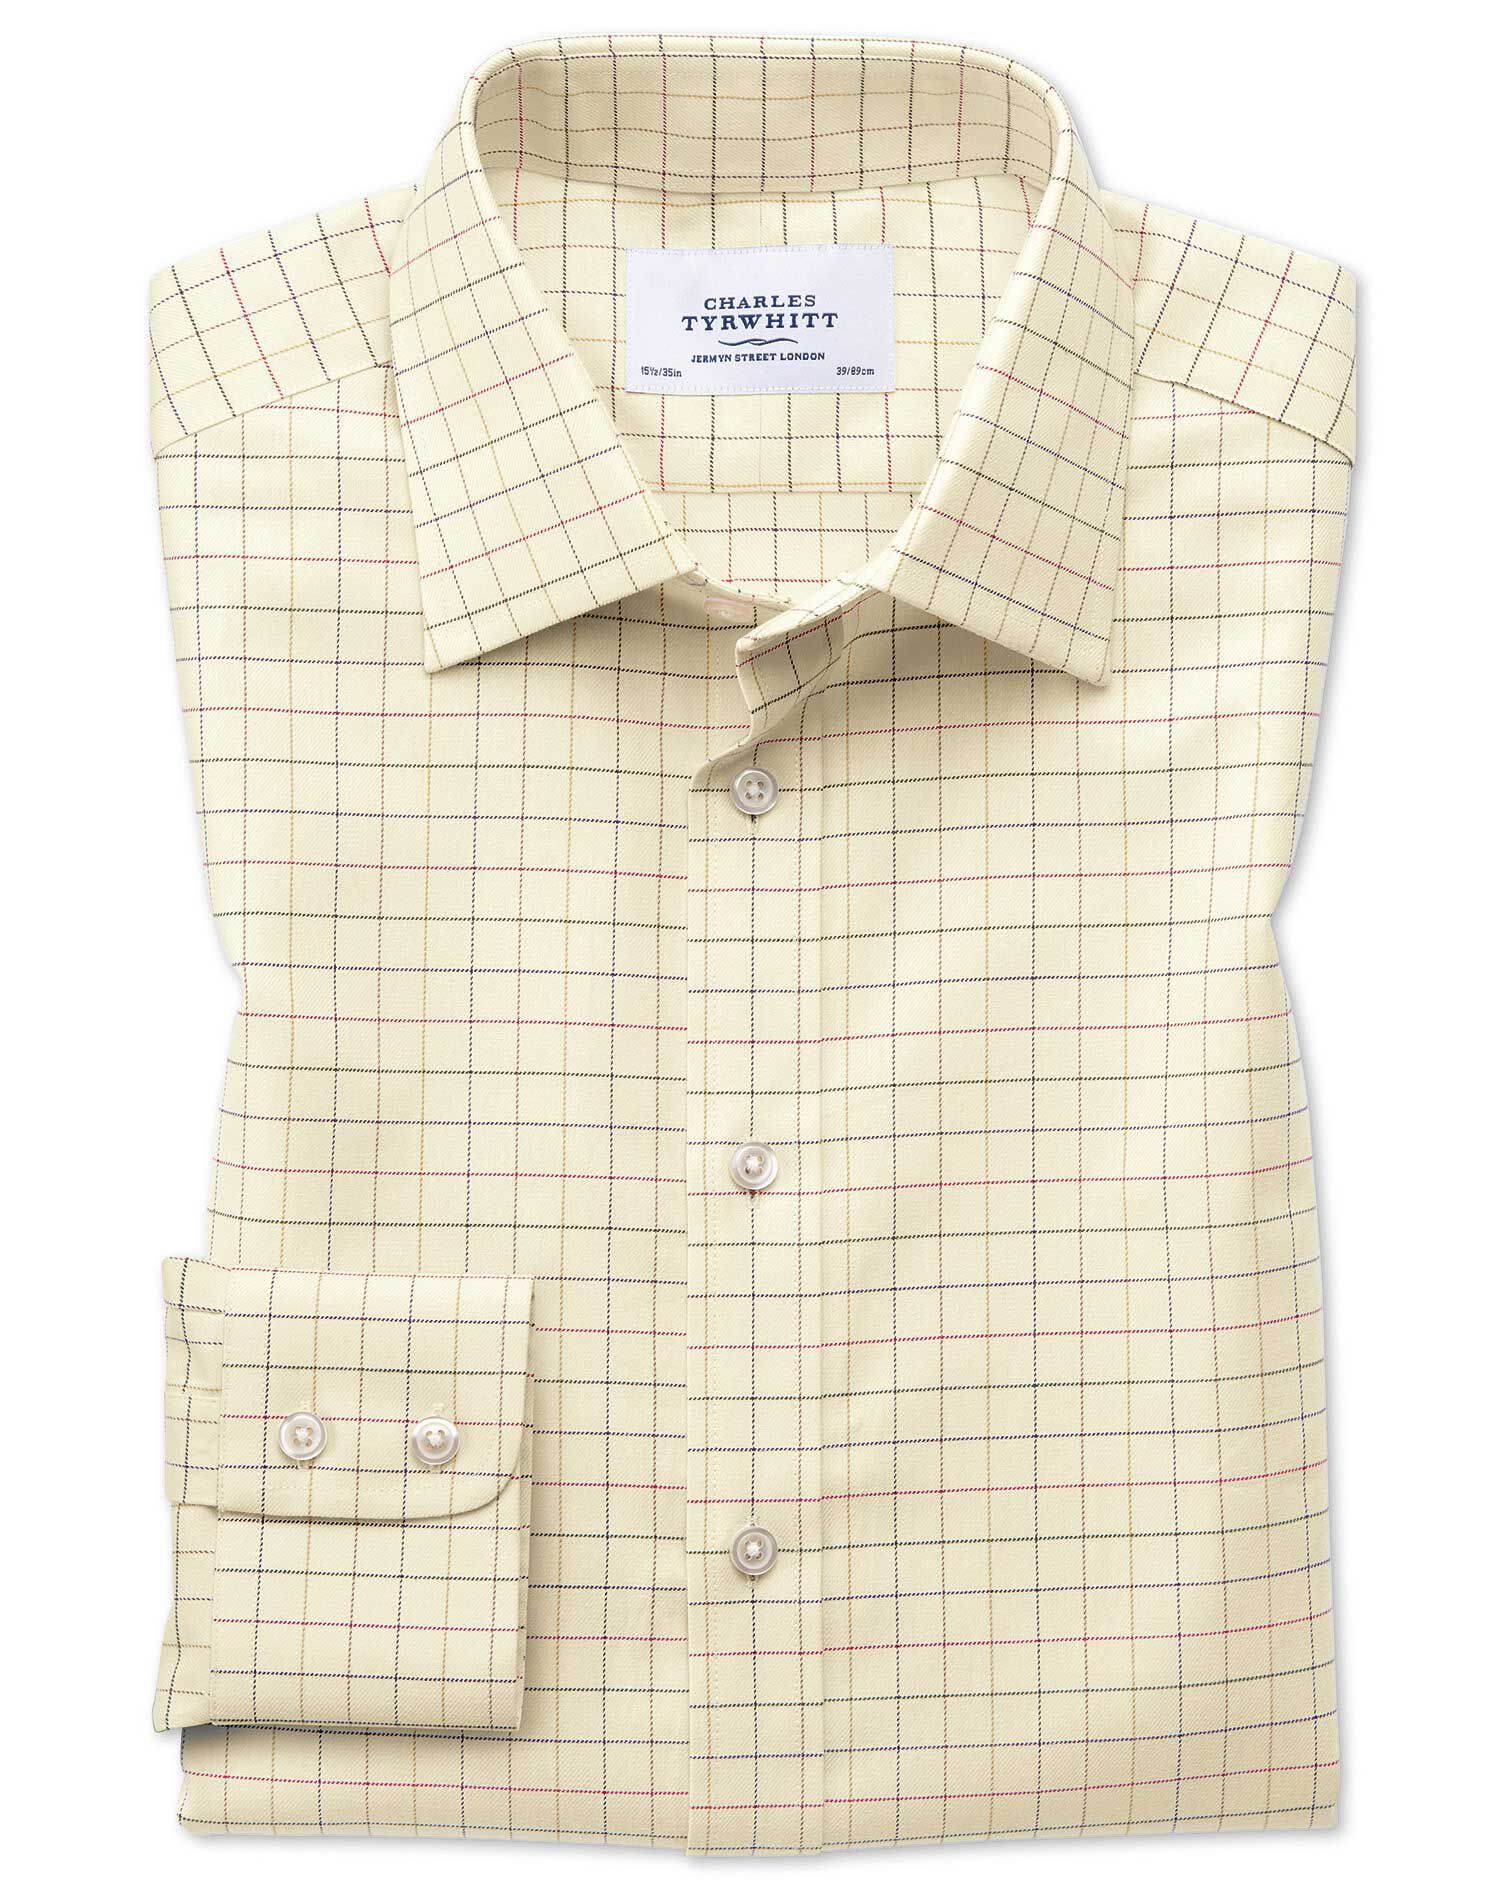 Extra Slim Fit Country Check Multi Cotton Formal Shirt Single Cuff Size 16/36 by Charles Tyrwhitt